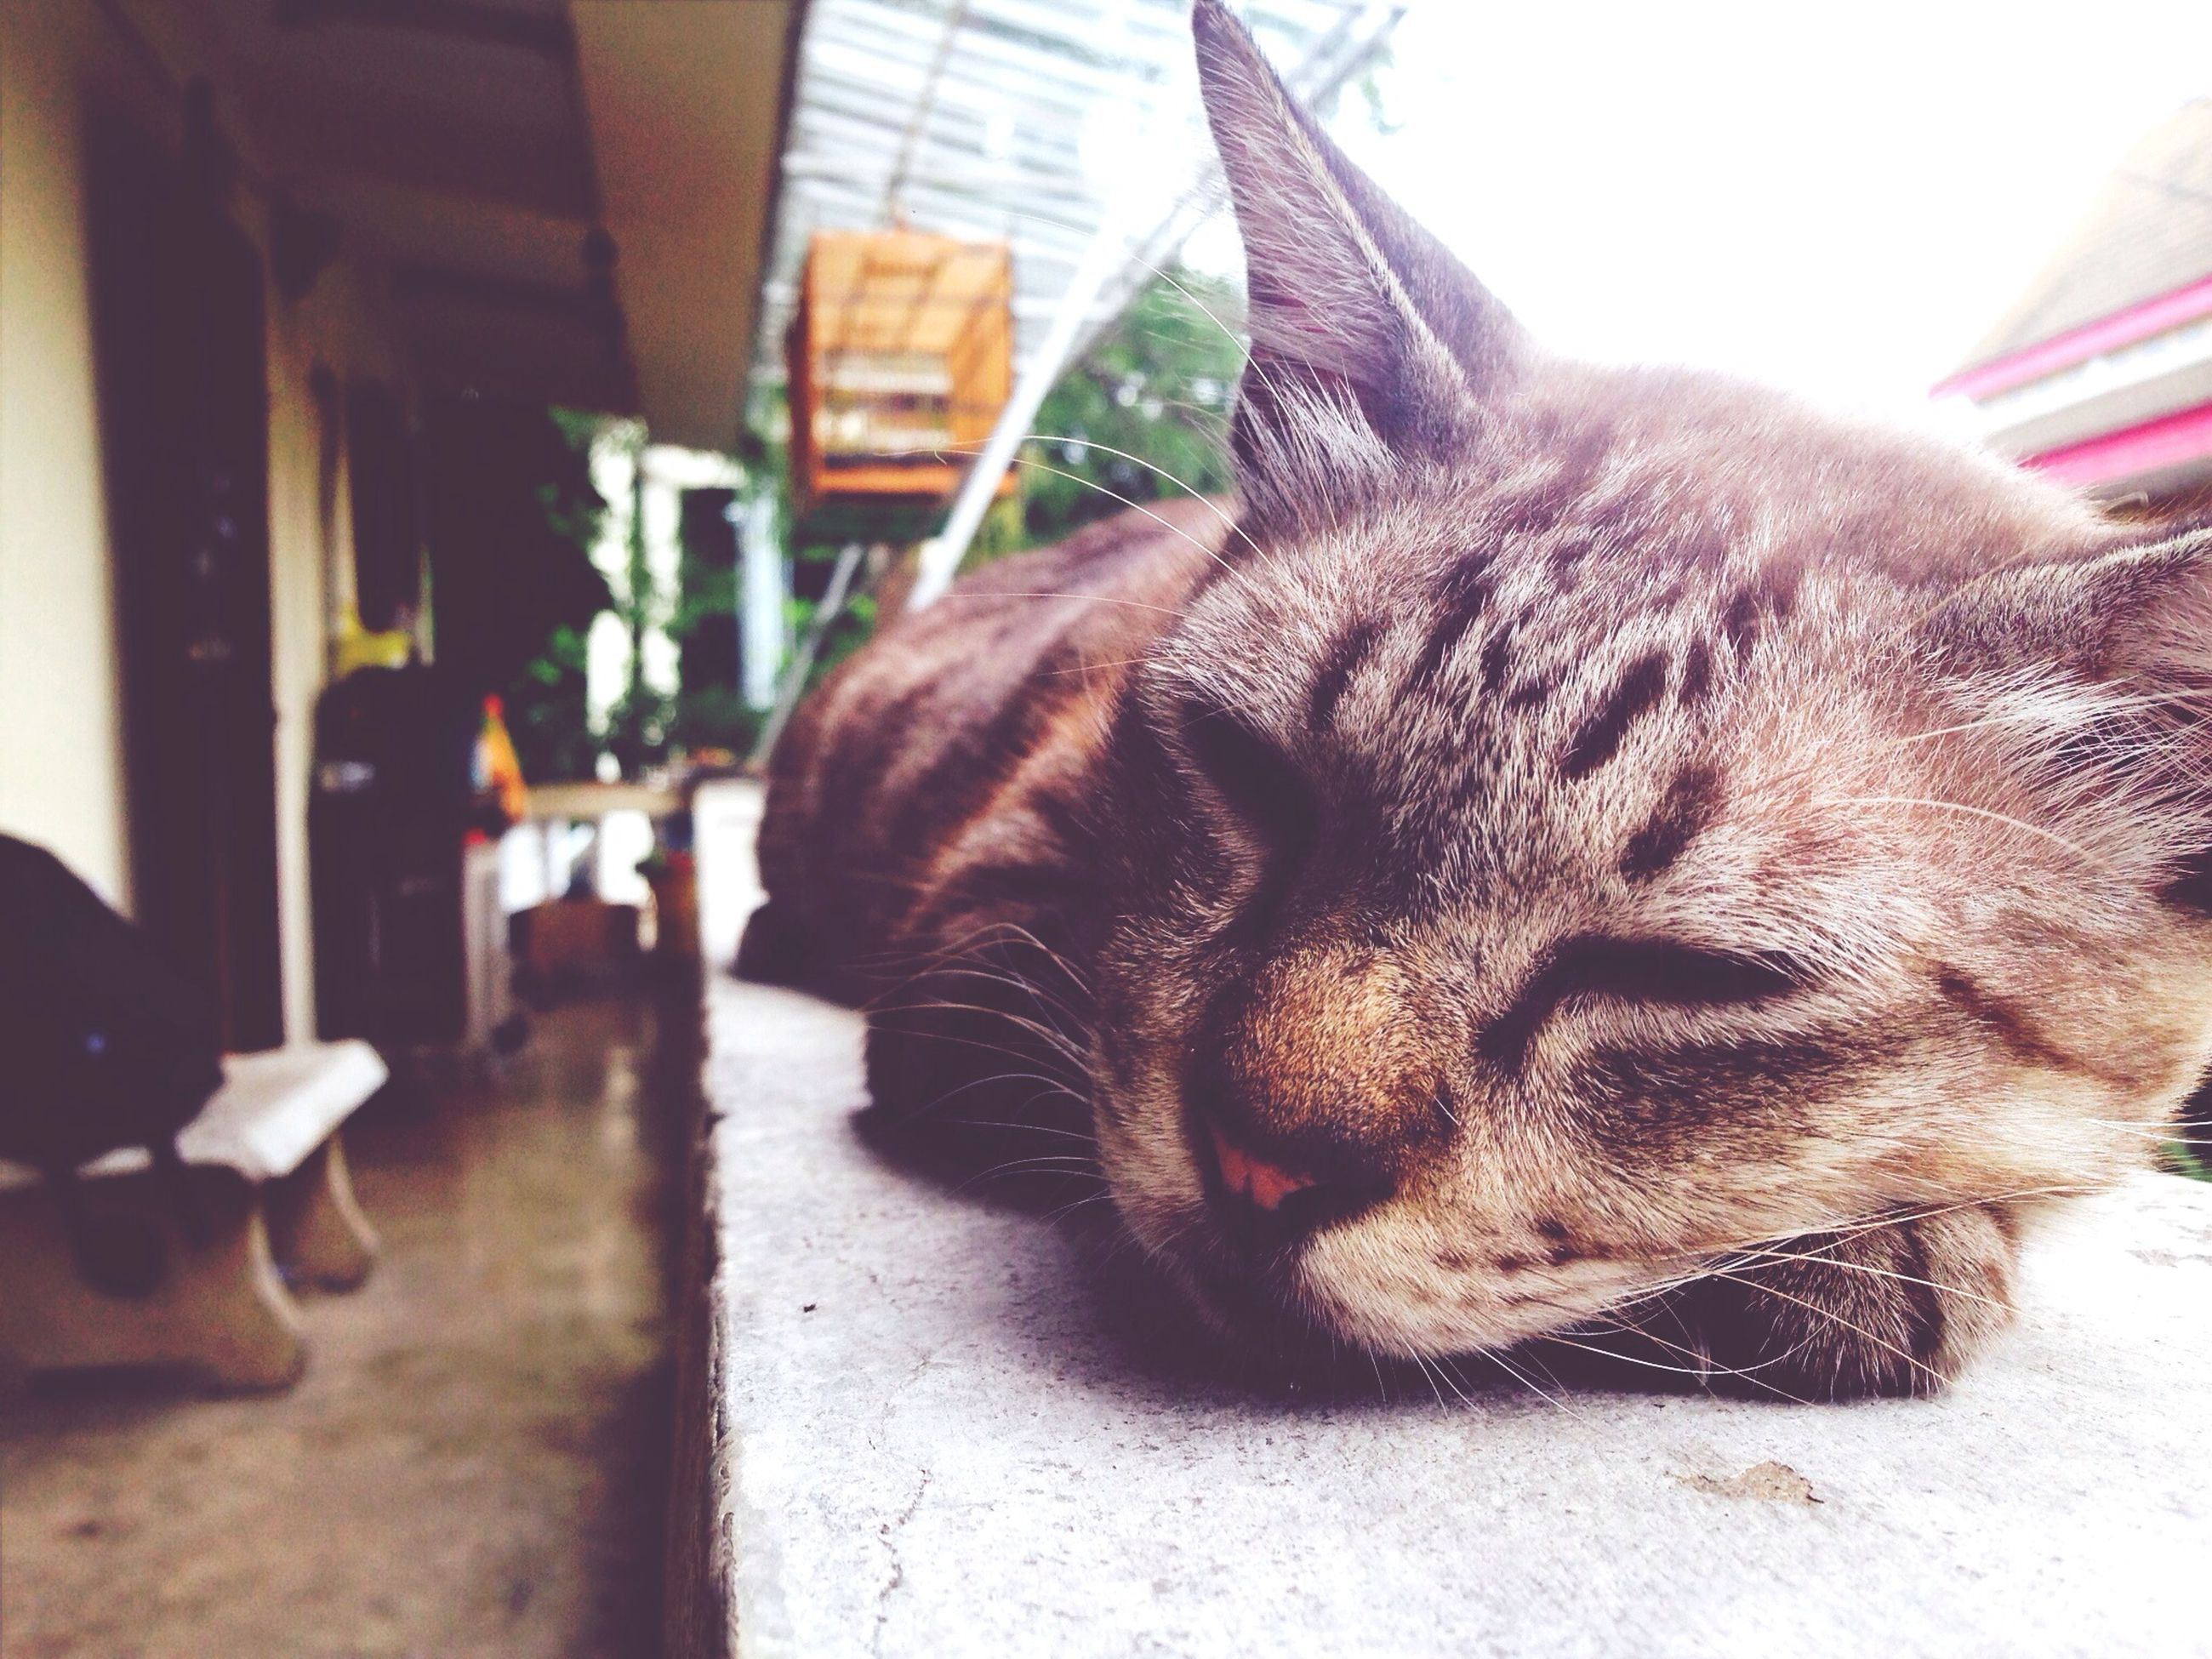 animal themes, domestic animals, mammal, one animal, pets, domestic cat, relaxation, cat, feline, indoors, whisker, sleeping, eyes closed, lying down, close-up, resting, focus on foreground, animal head, home interior, dog